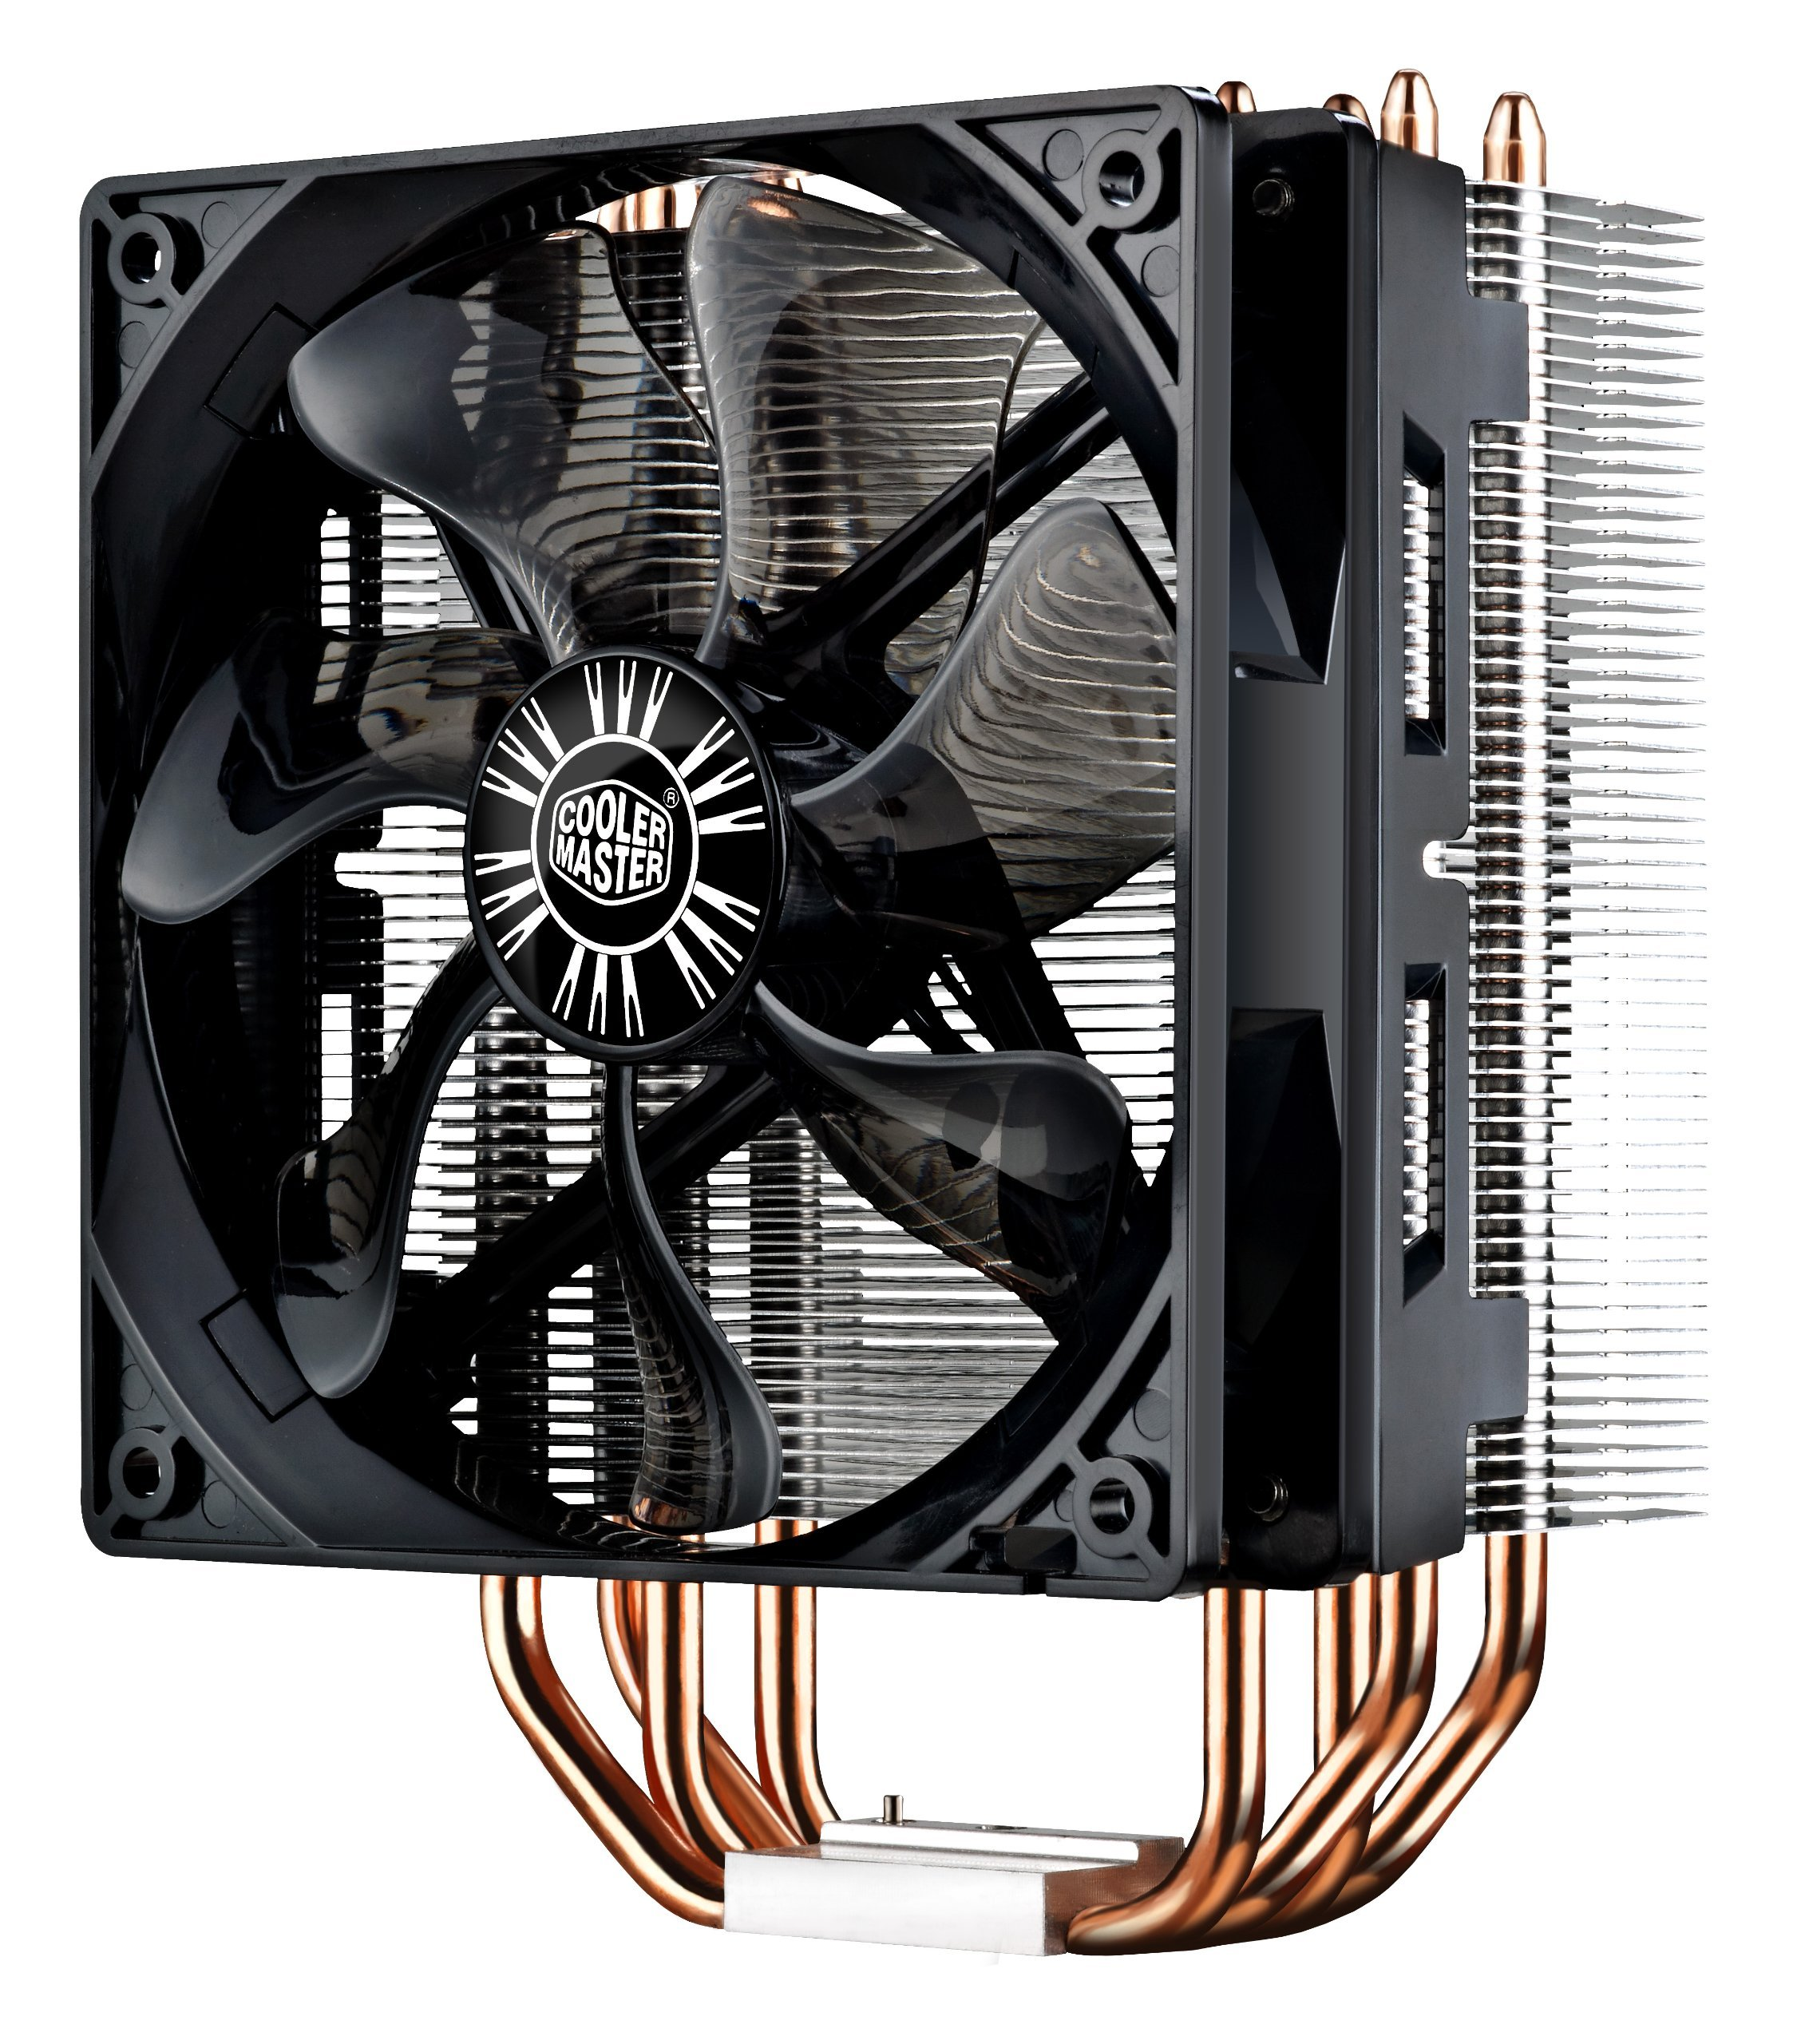 Cooler Master Hyper 212 Evo (RR-212E-20PK-R2) CPU Cooler with PWM Fan, Four Direct Contact Heat Pipes (Renewed) by Cooler Master